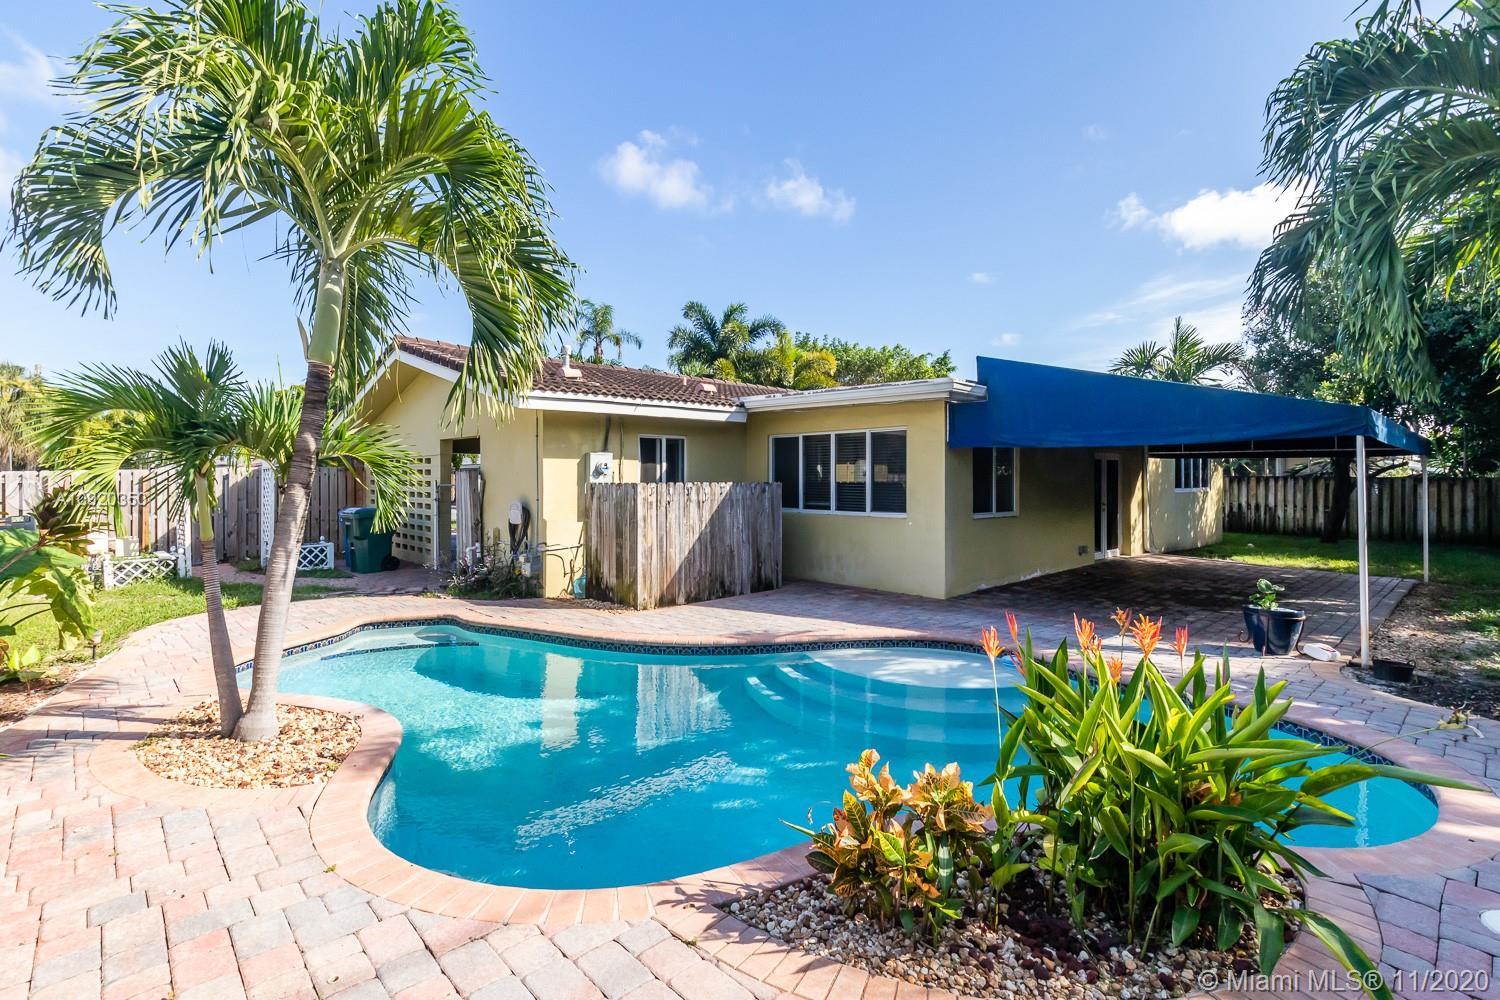 LARGE BEAUTIFUL 3/2 CORNER POOL HOME!! AMAZING OPPORTUNITY OAKLAND PARK  IN THE DESIRABLE NEIGHBORHOOD OF CORAL WOODS!  PERFECT HOME FOR ENTERTAINING! LOTS OF SPACE AND NATURAL LIGHT. LARGE DRIVEWAY WITH PLENTY ROOM FOR PARKING. PRIVATE POOL WITH COVERED PATIO. 5 MINUTES TO THE BEACHES, SHOPPING CENTER, GYM AND RESTAURANTS. NEW A/C (07/2020)